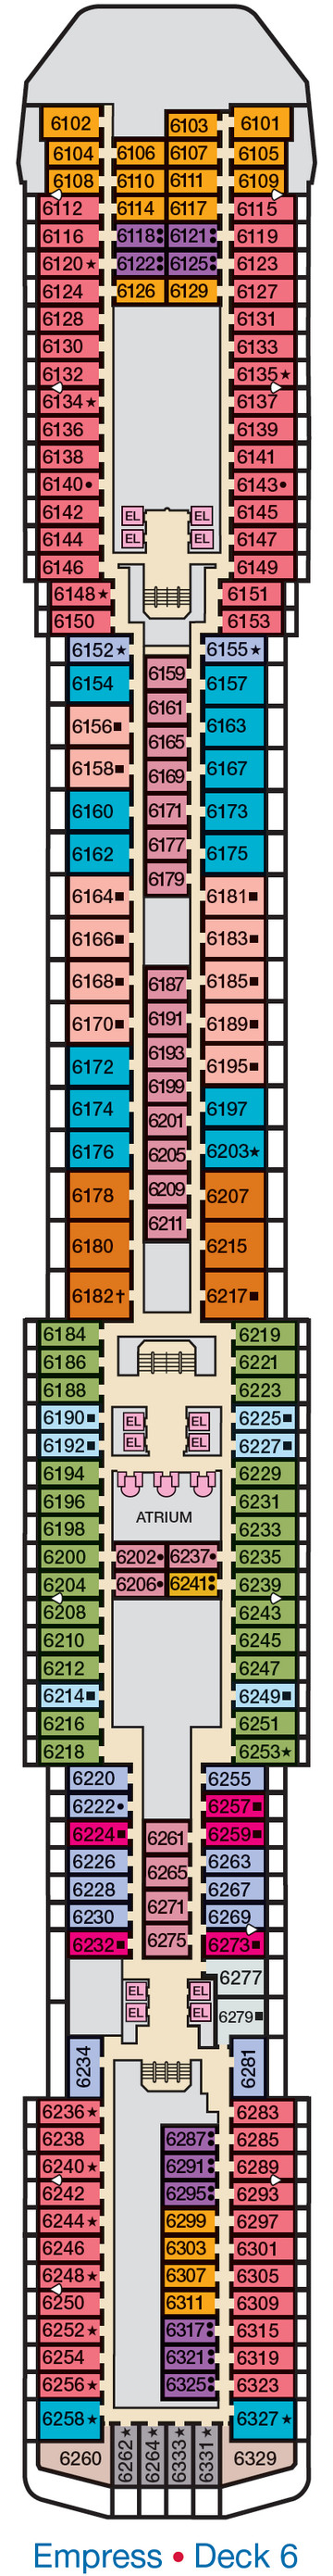 Carnival Legend Empress Deck 6 layout